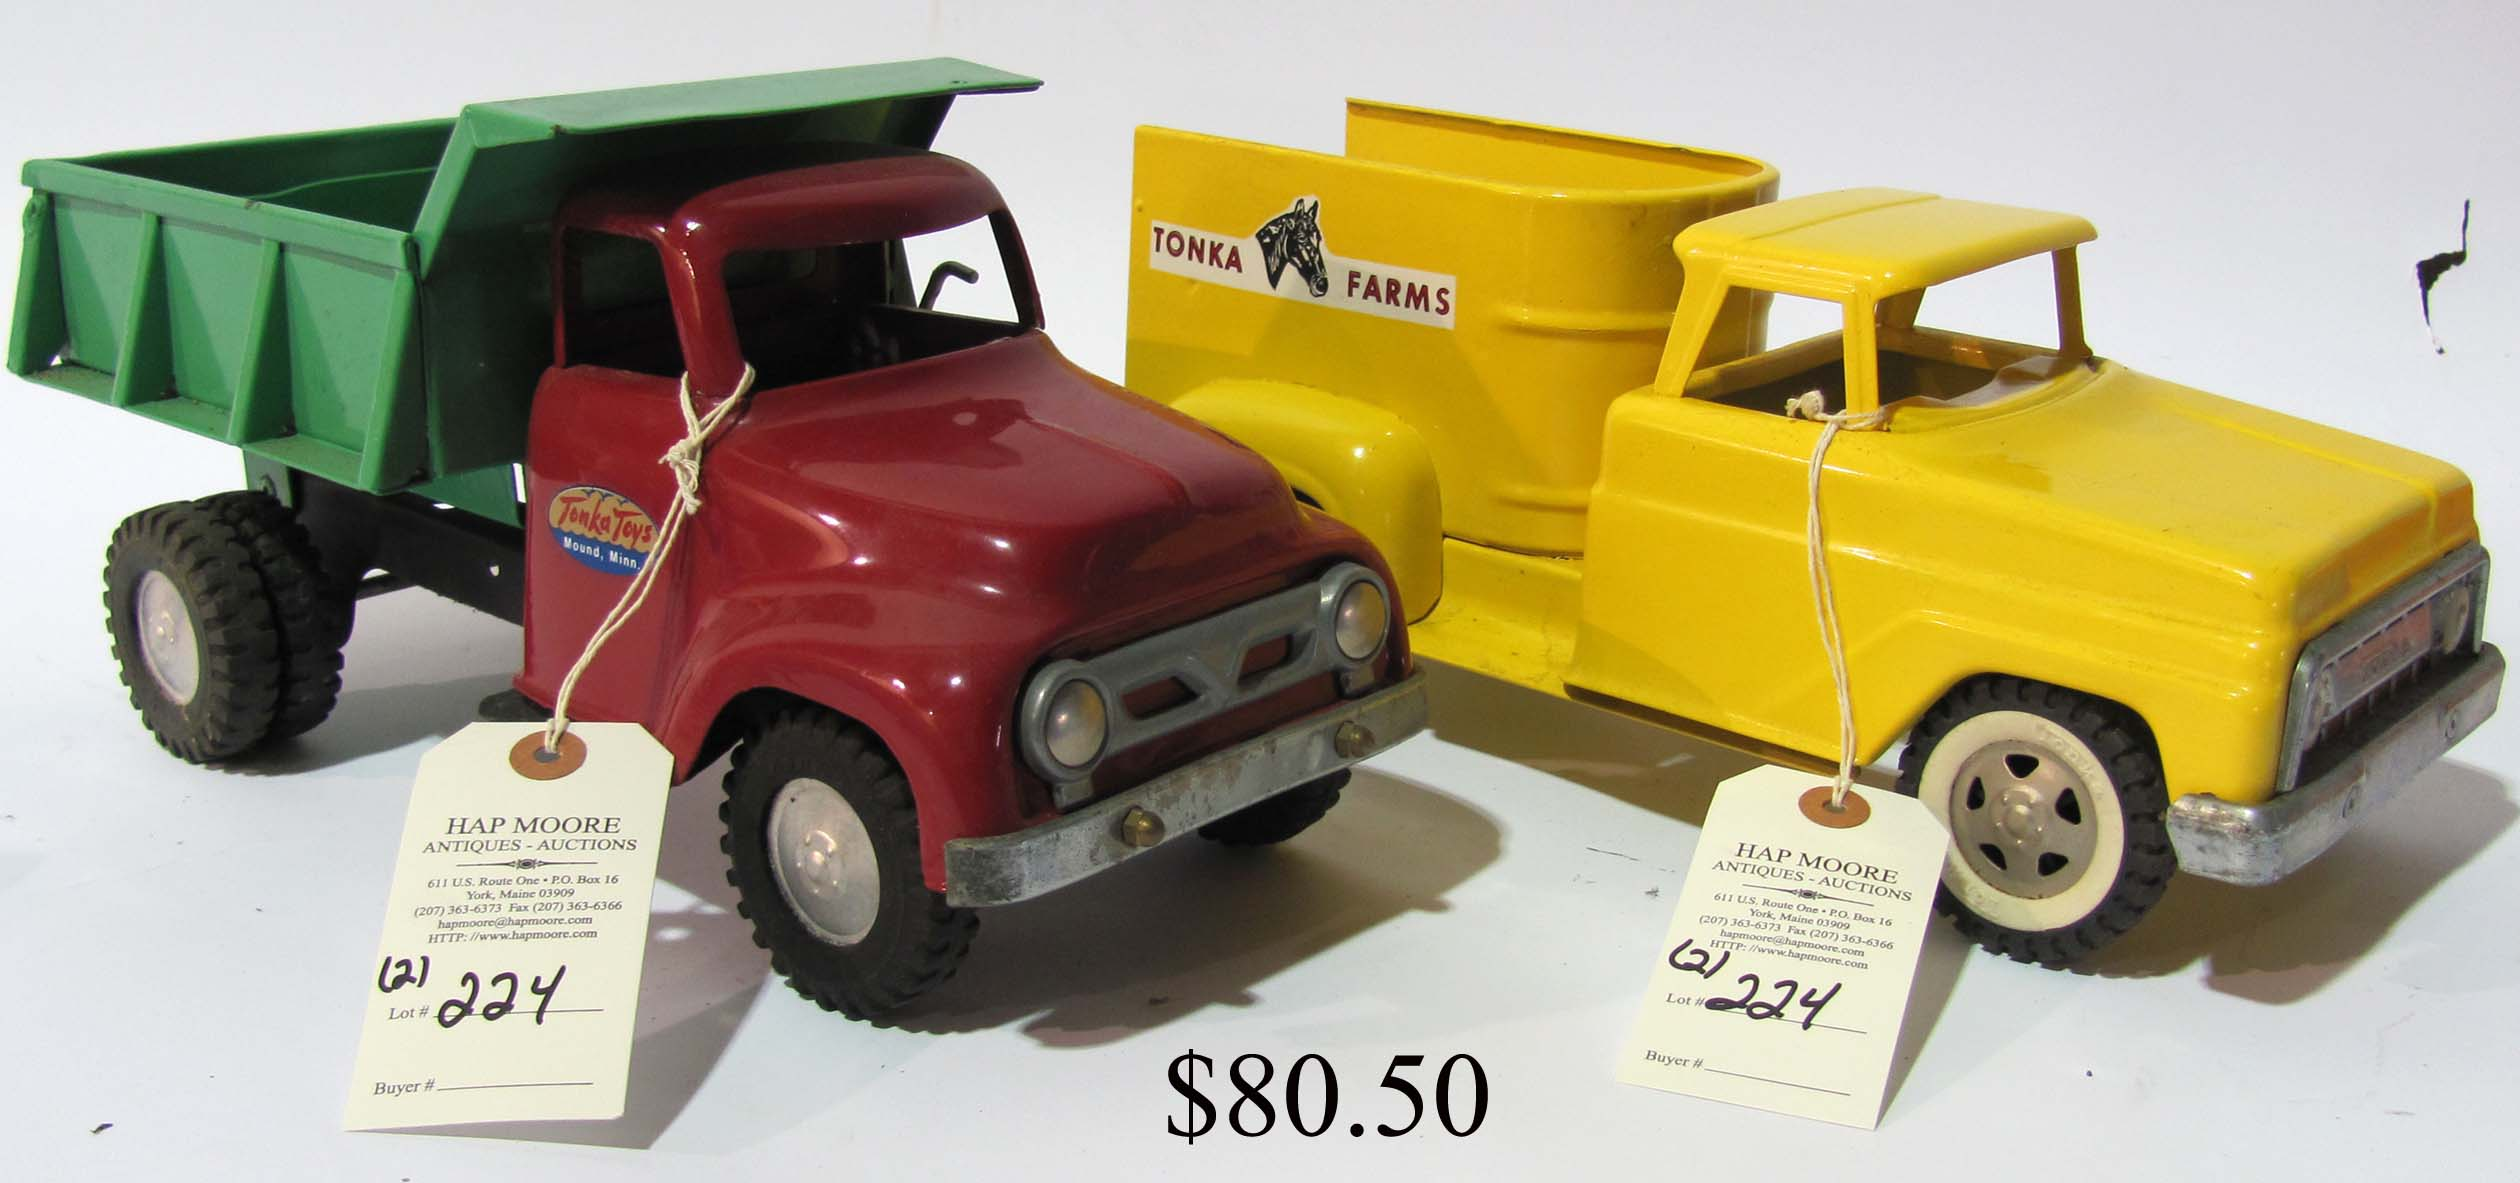 06 09 12Toys likewise 302141620232 additionally 291185463837 together with 321570660948 additionally 4931849 Vintage Ertl Pressed Steel Toy Semi Truck With Meijer Trailer And Buddy L Truck. on pressed steel dump truck